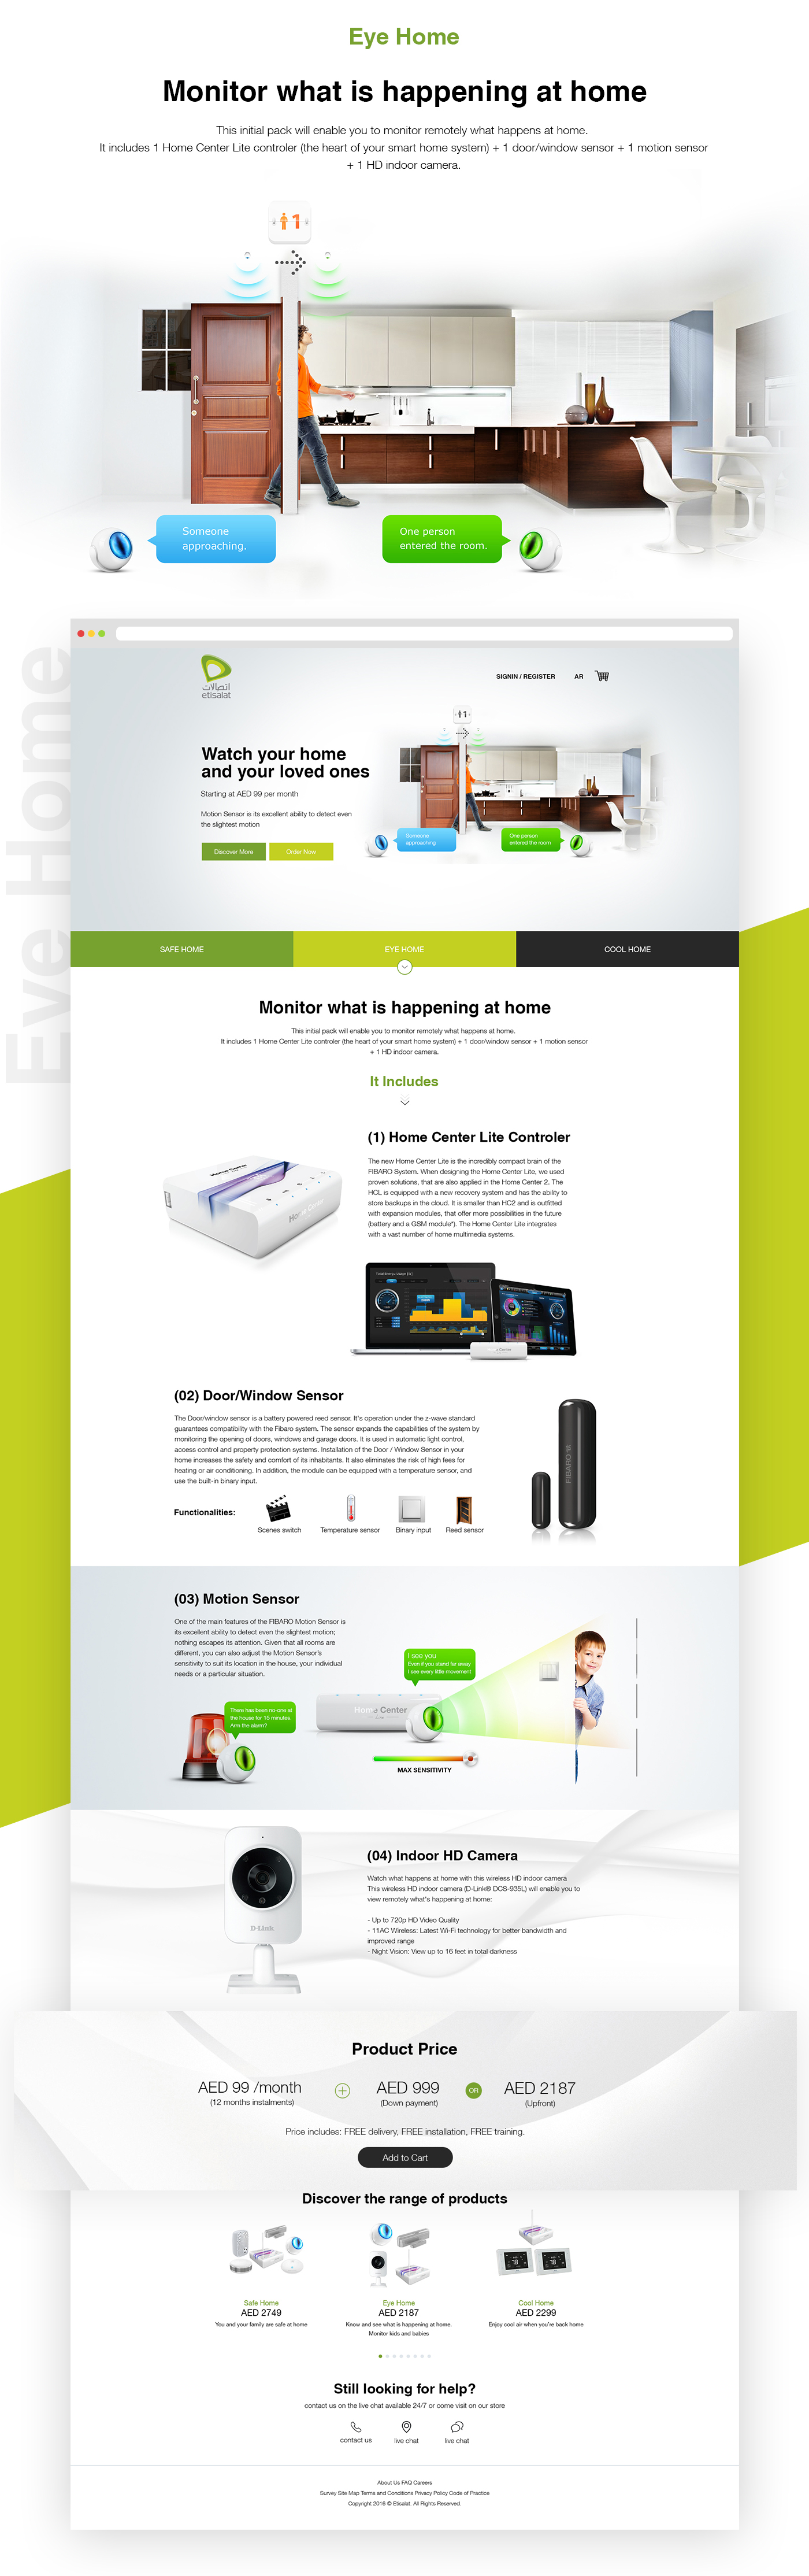 Smart Home,etisalat,UAE,fibaro,Home system,Home Engine,pixelzeesh,UI,ux